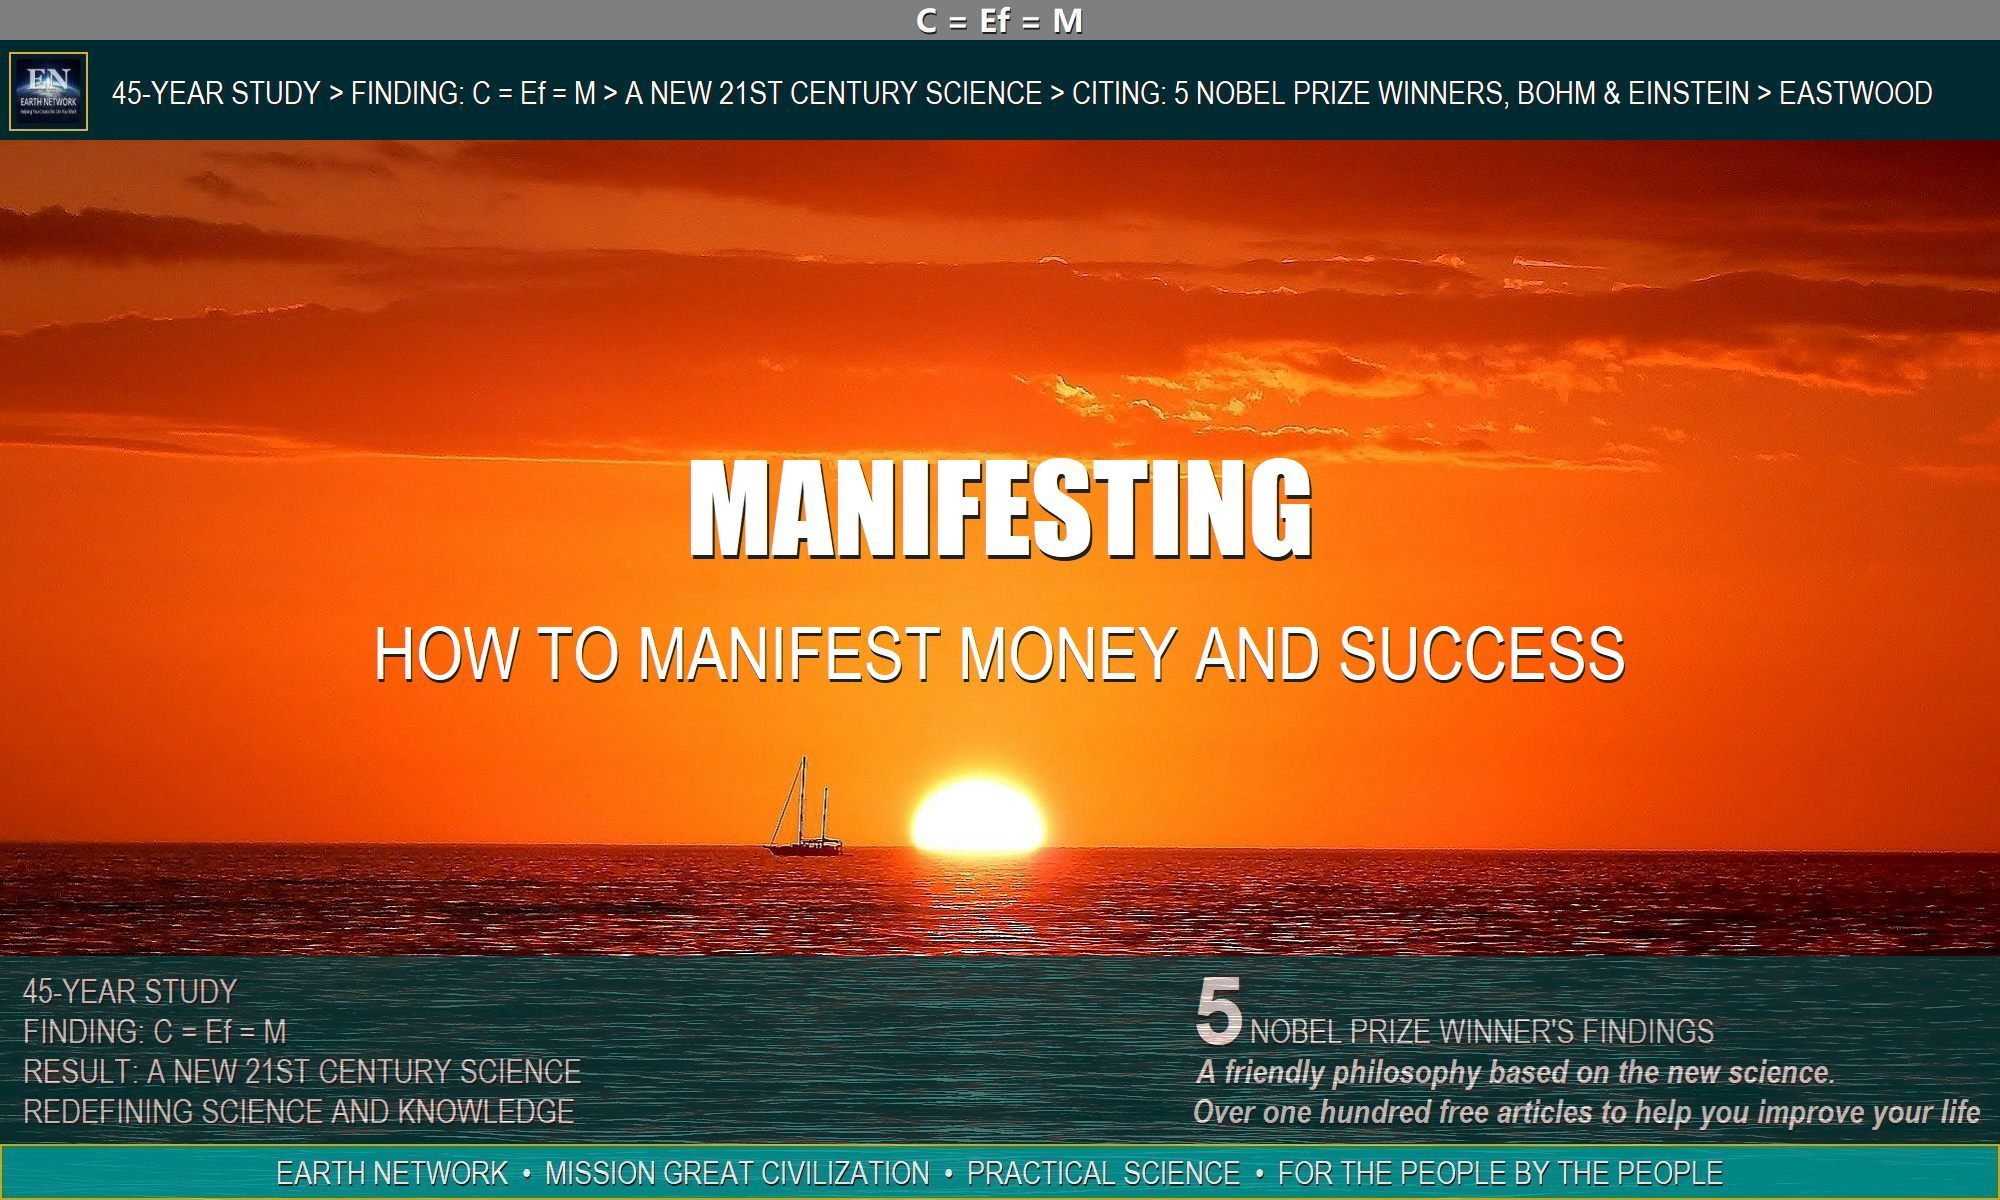 Beautiful sunset depicts how you materialize money and manifest success with positive thinking.